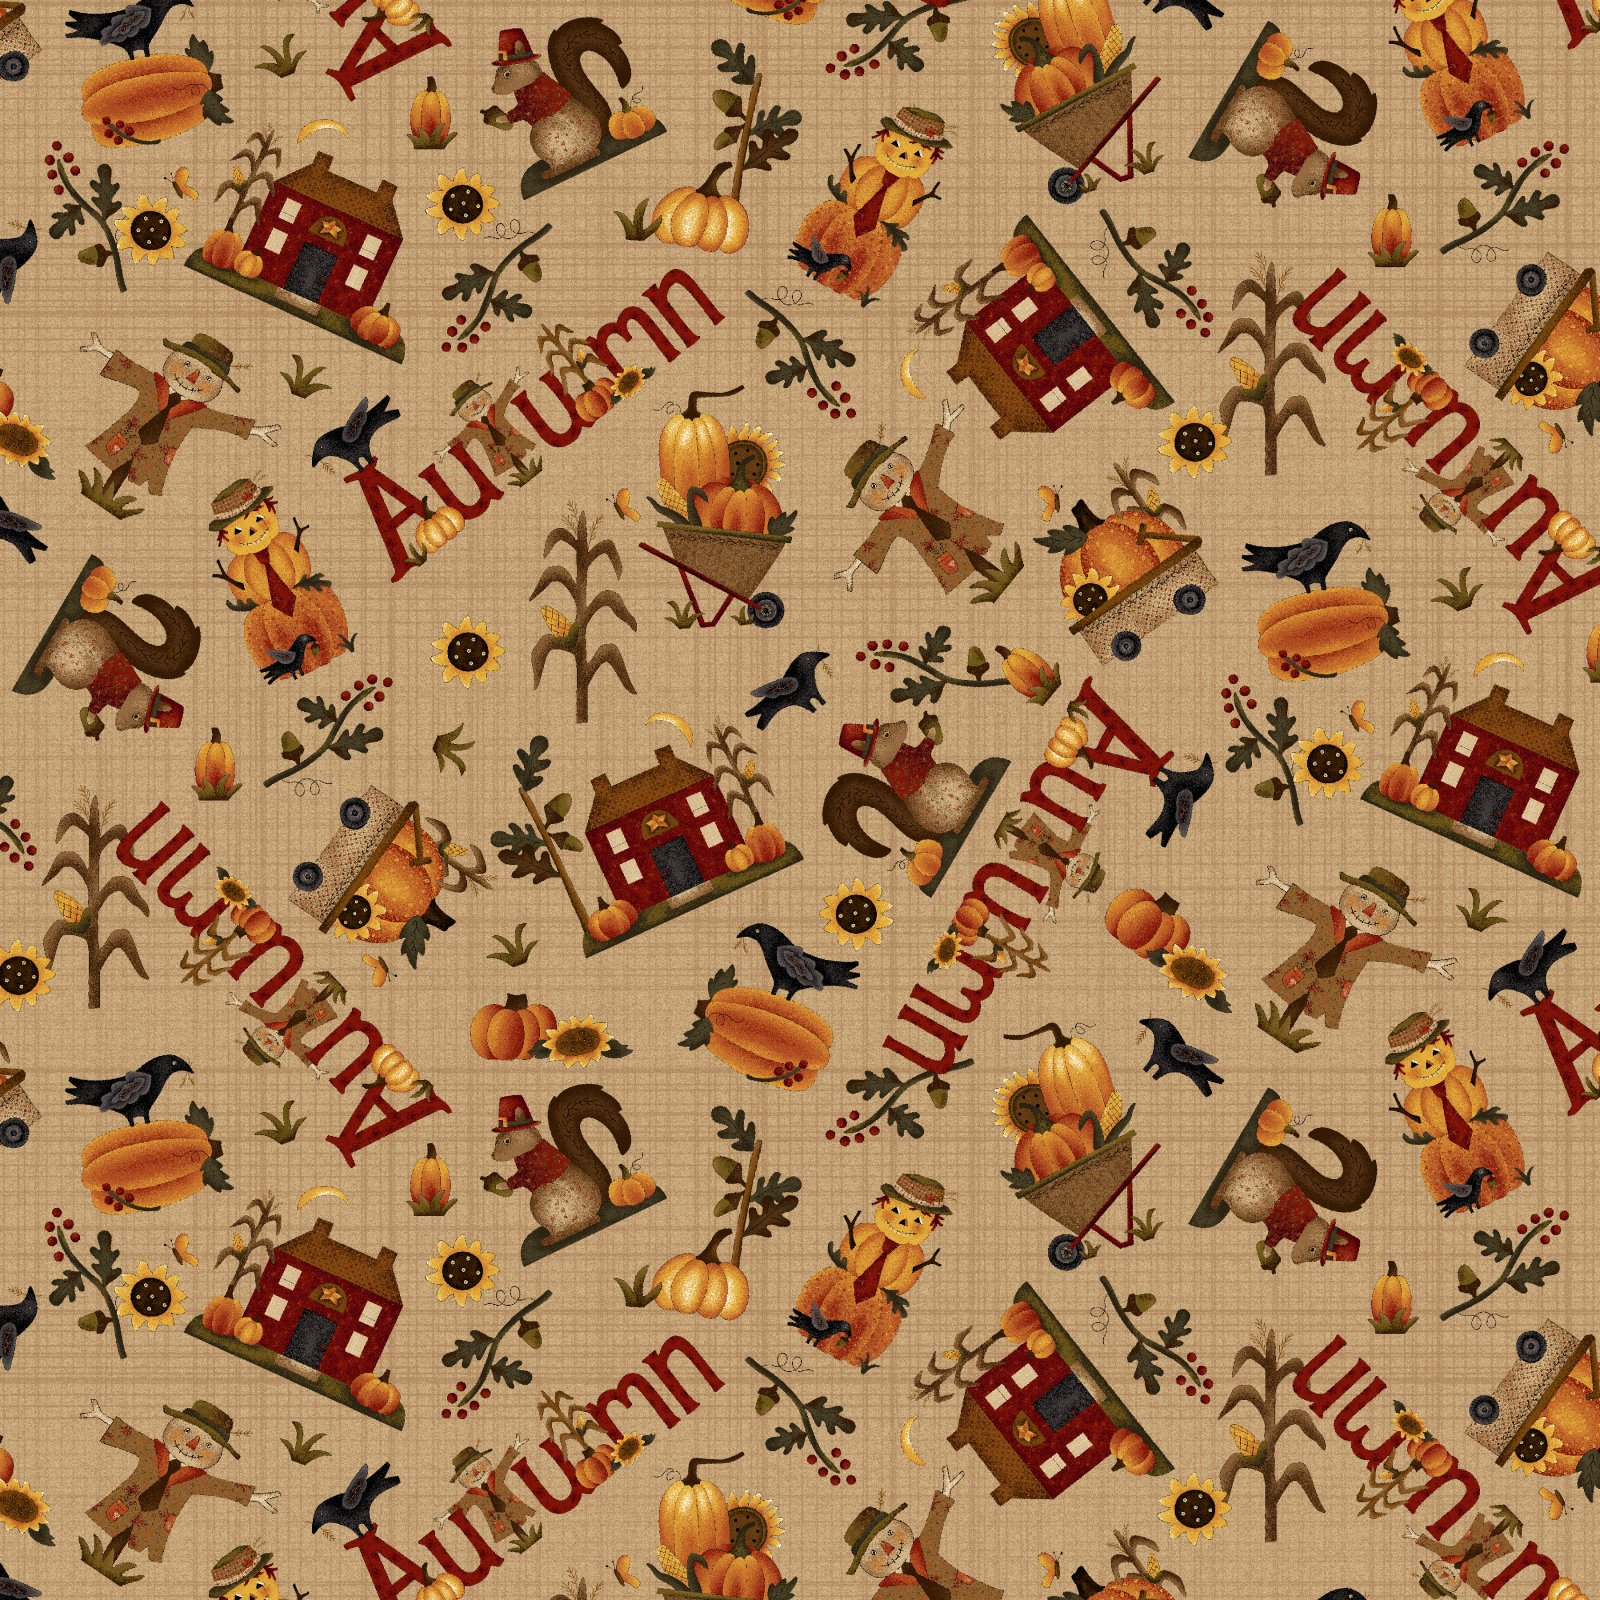 Buttermilk Autumn - 2273-34 * 1/2 yard